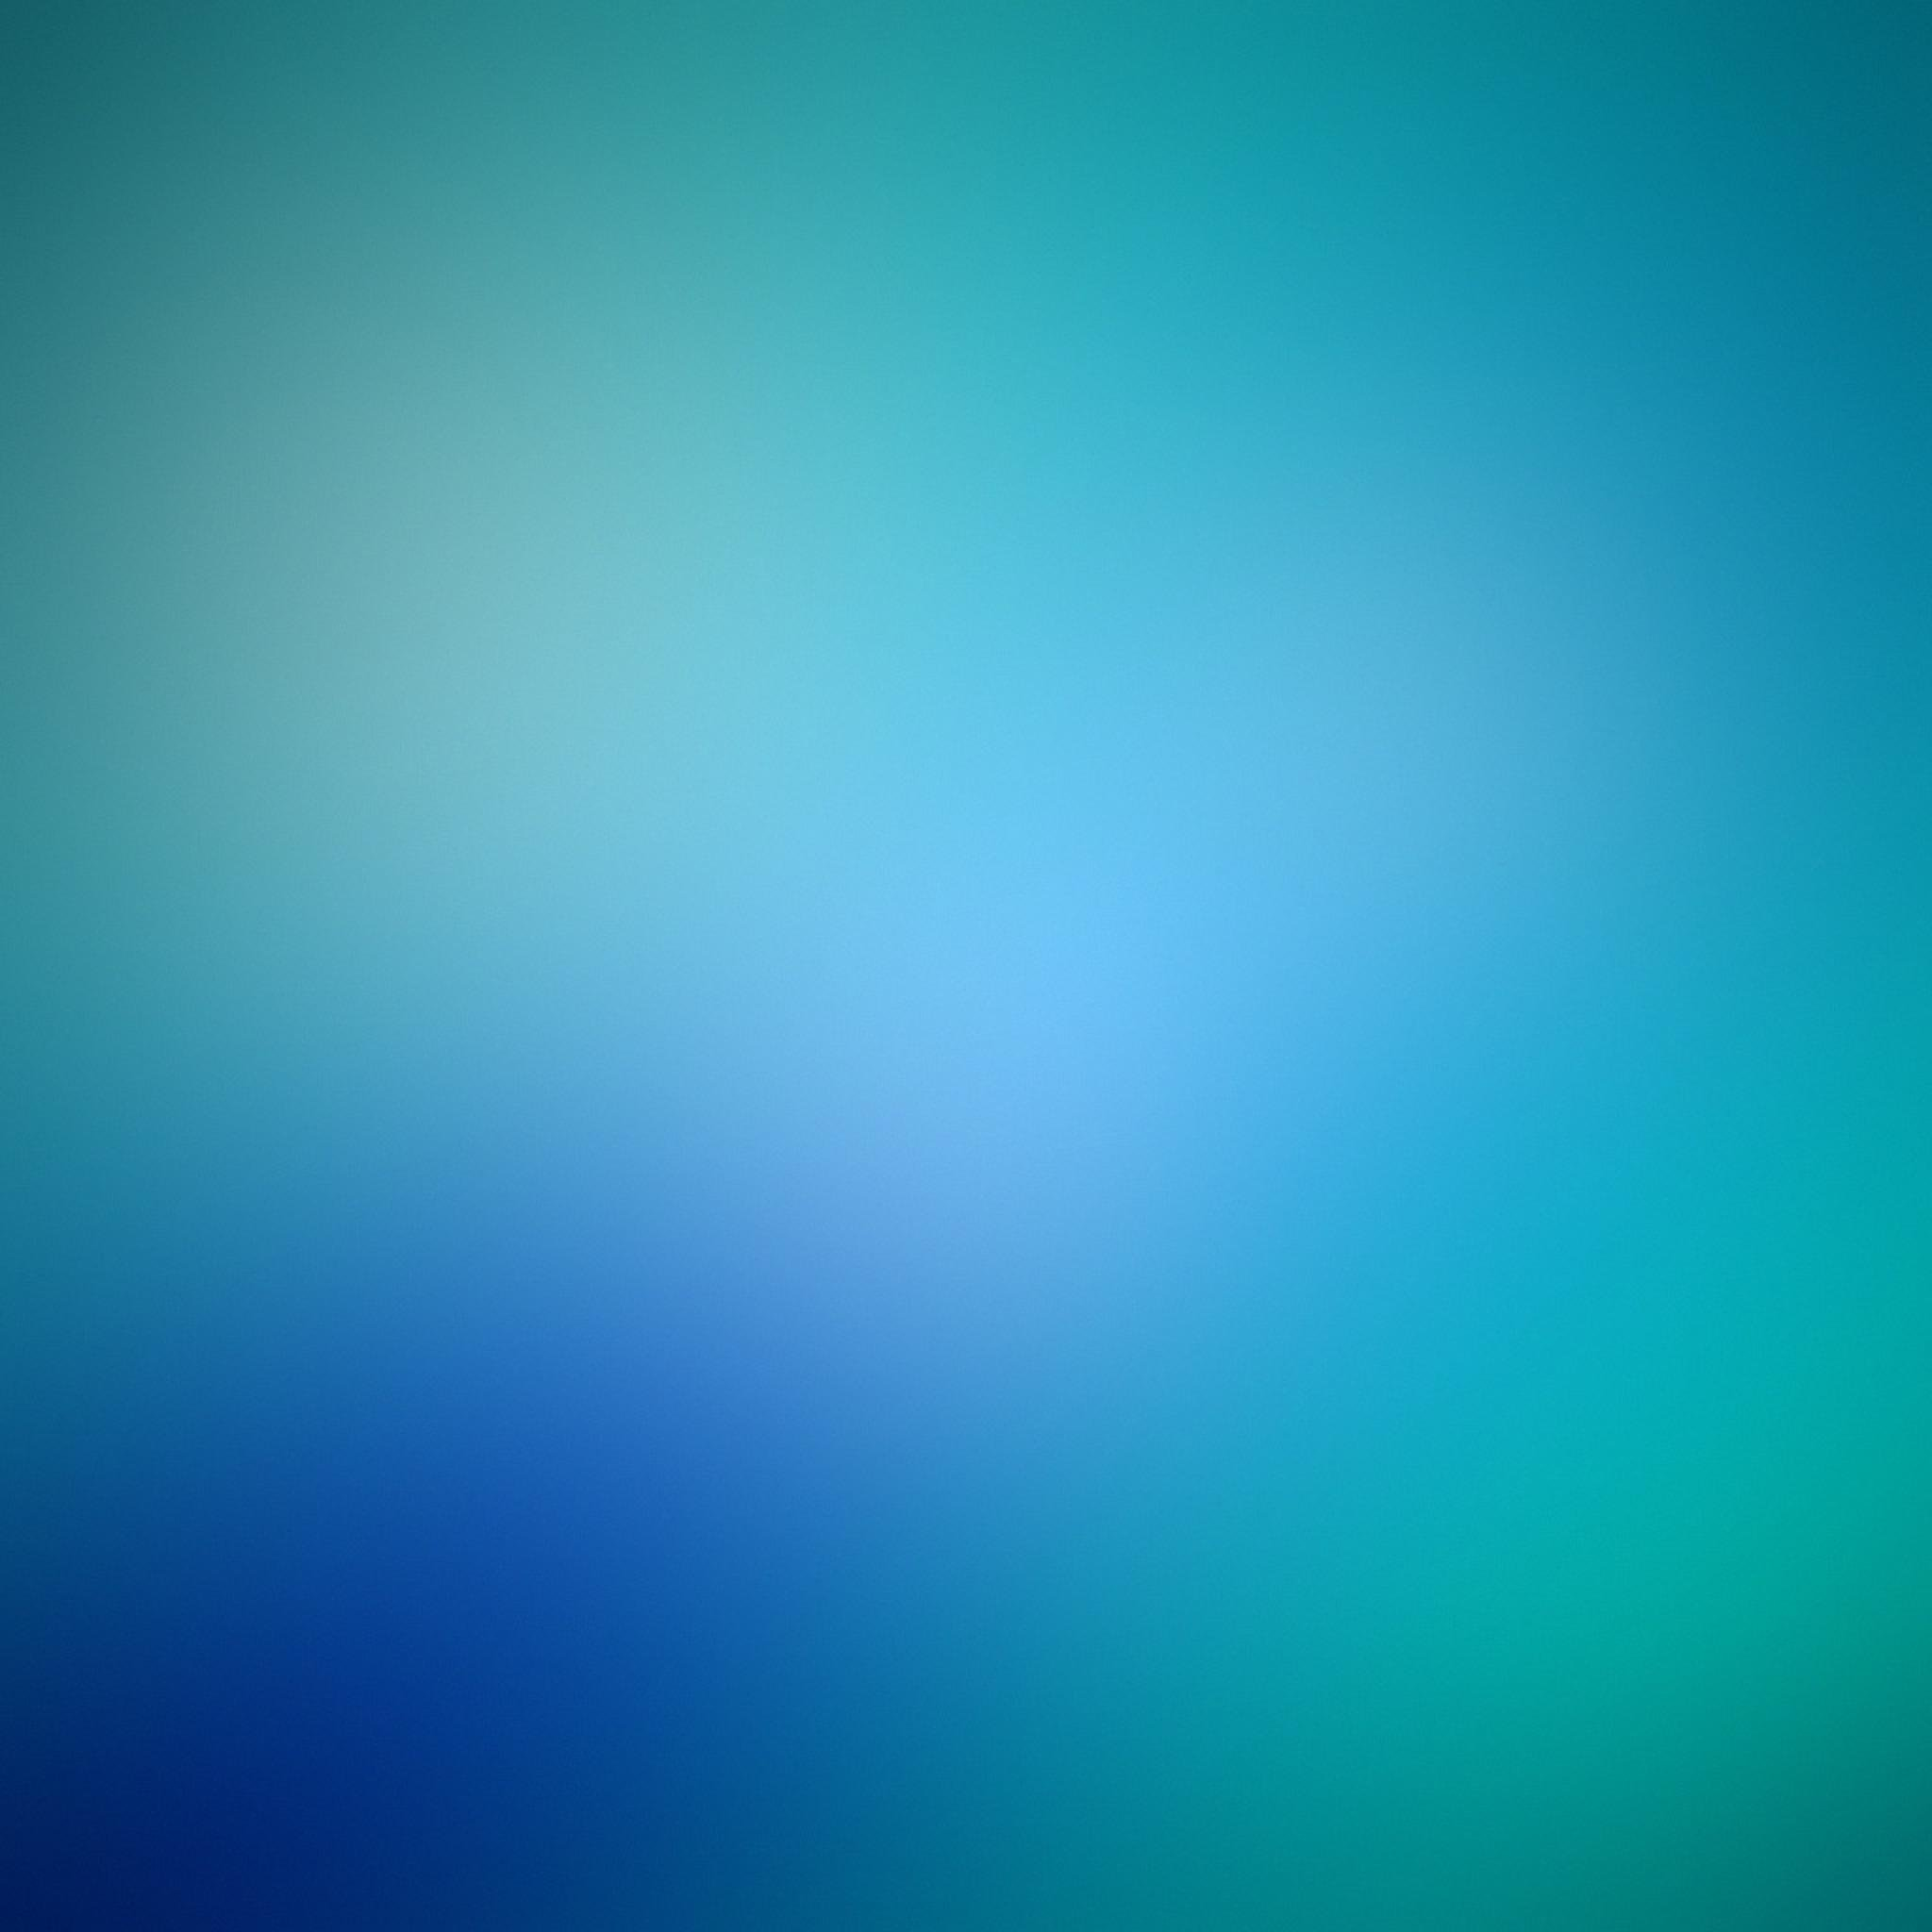 solid neon blue background - photo #21